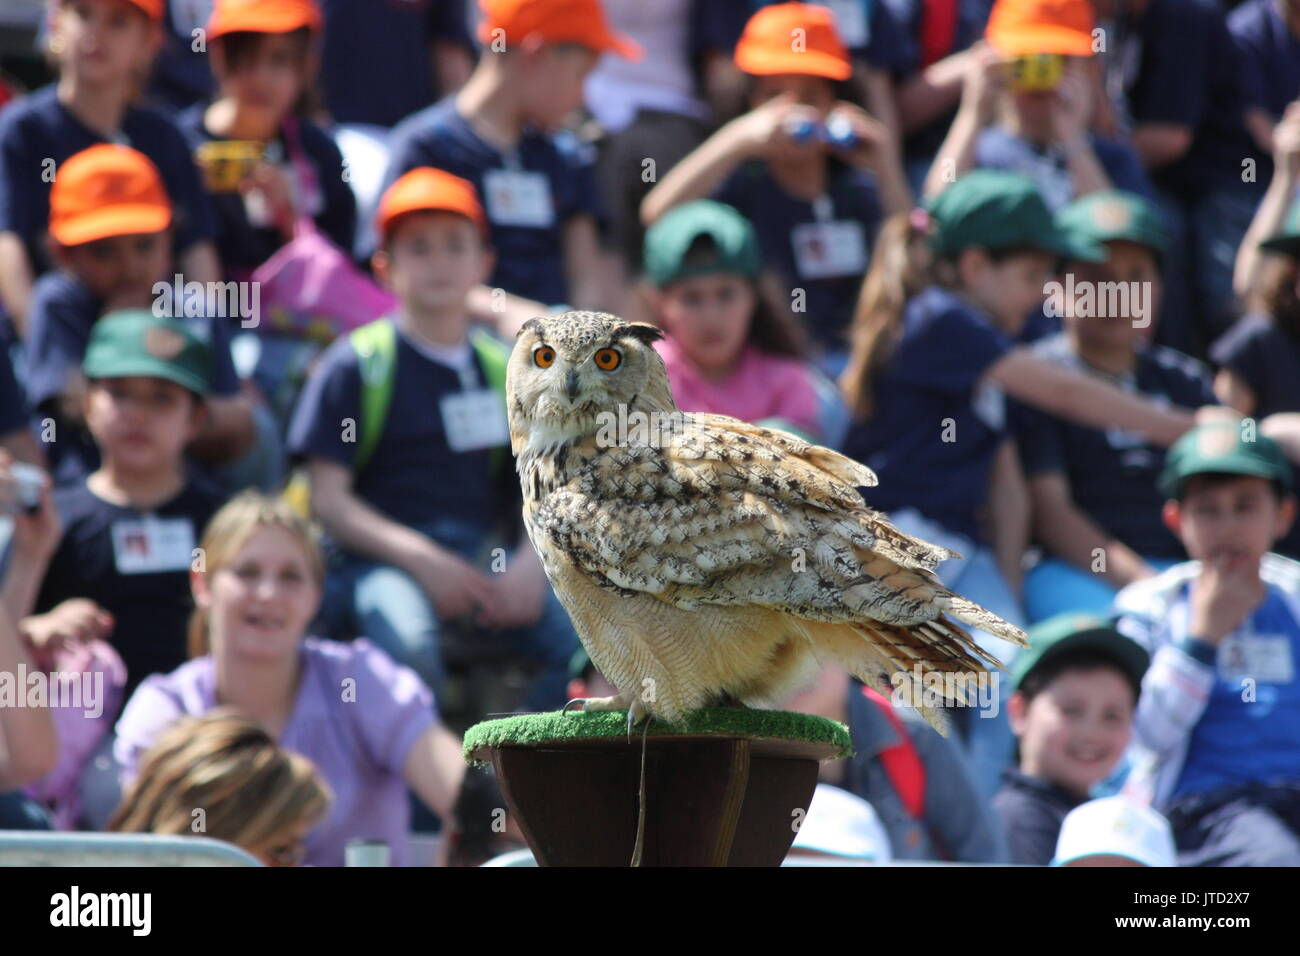 TORVAIANICA, ITALY - MAY 27, 2010: Eurasian eagle owl (Bubo Bubo) impressing his audience during a public show. - Stock Image